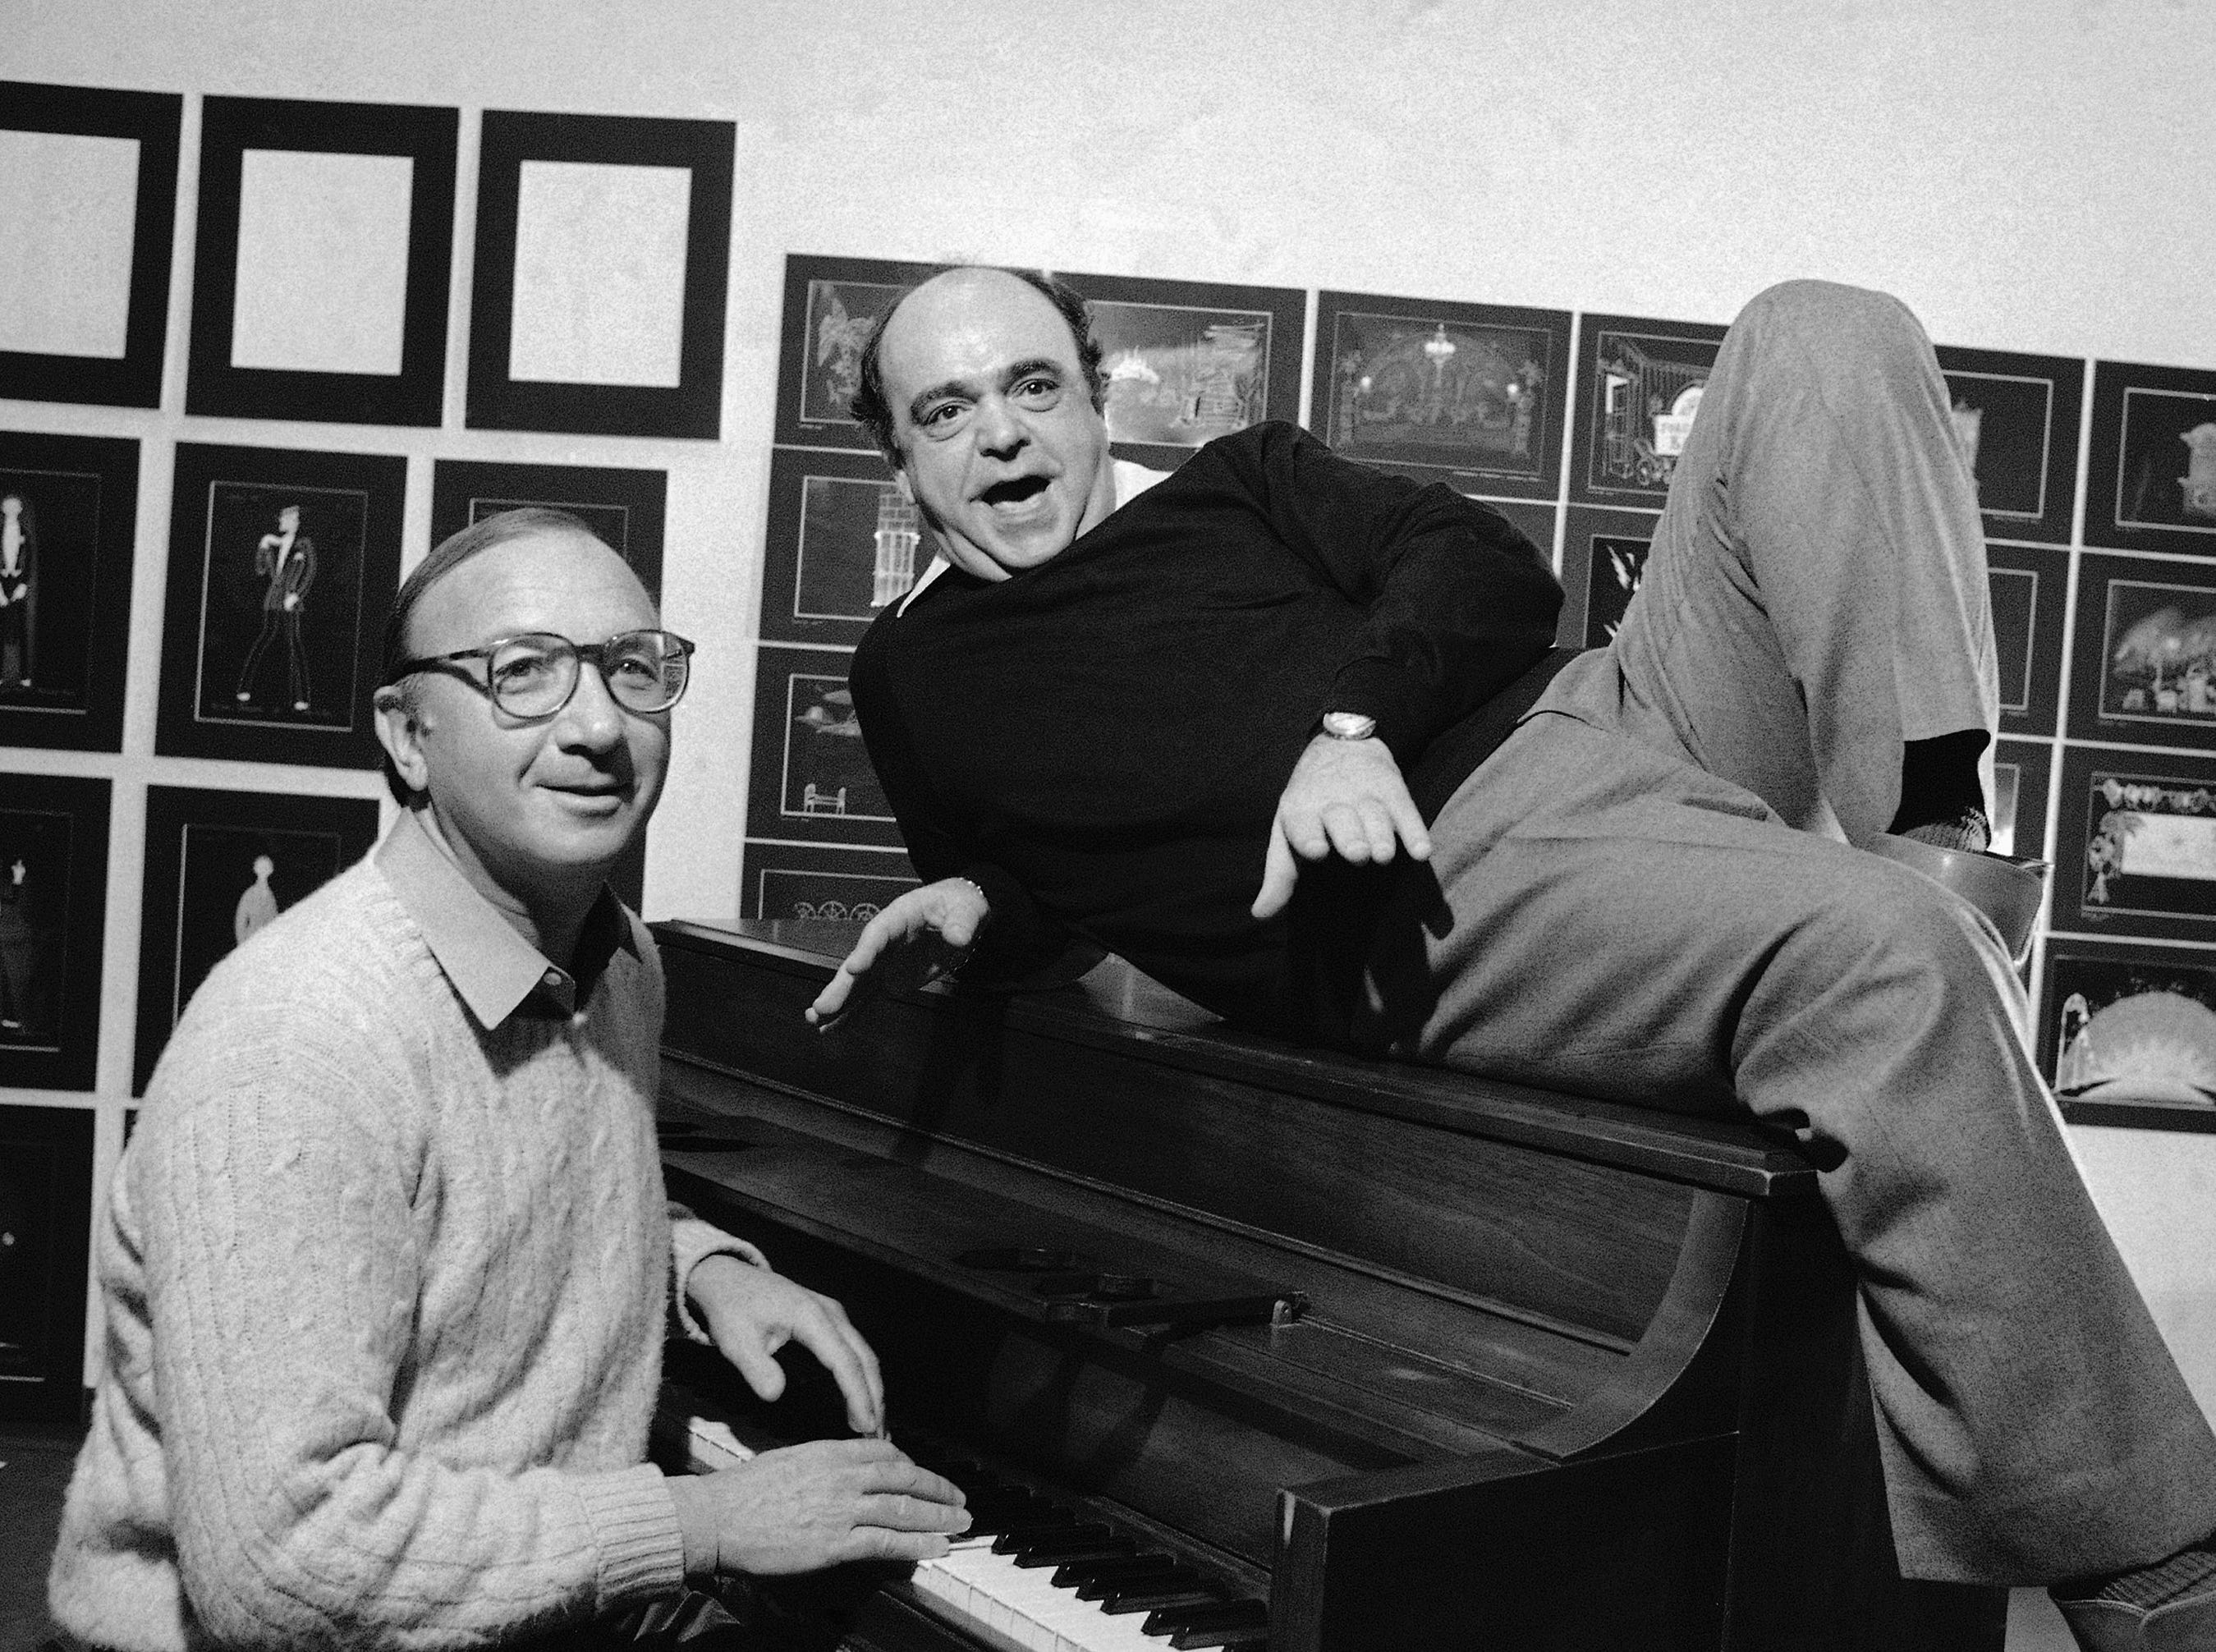 Playwright Neil Simon, left, and actor James Coco ham it up at piano, Monday, Nov. 23, 1981 in New York during the New York announcement of a Broadway bound musical comedy, ?Little Me.? Coco will star in the new show, written by Simon, along with Victor Garber and Mary Gordon Murray, slated for a Jan. 21st opening at the Eugene O?Neill Theater. (AP Photo/Lederhandler)